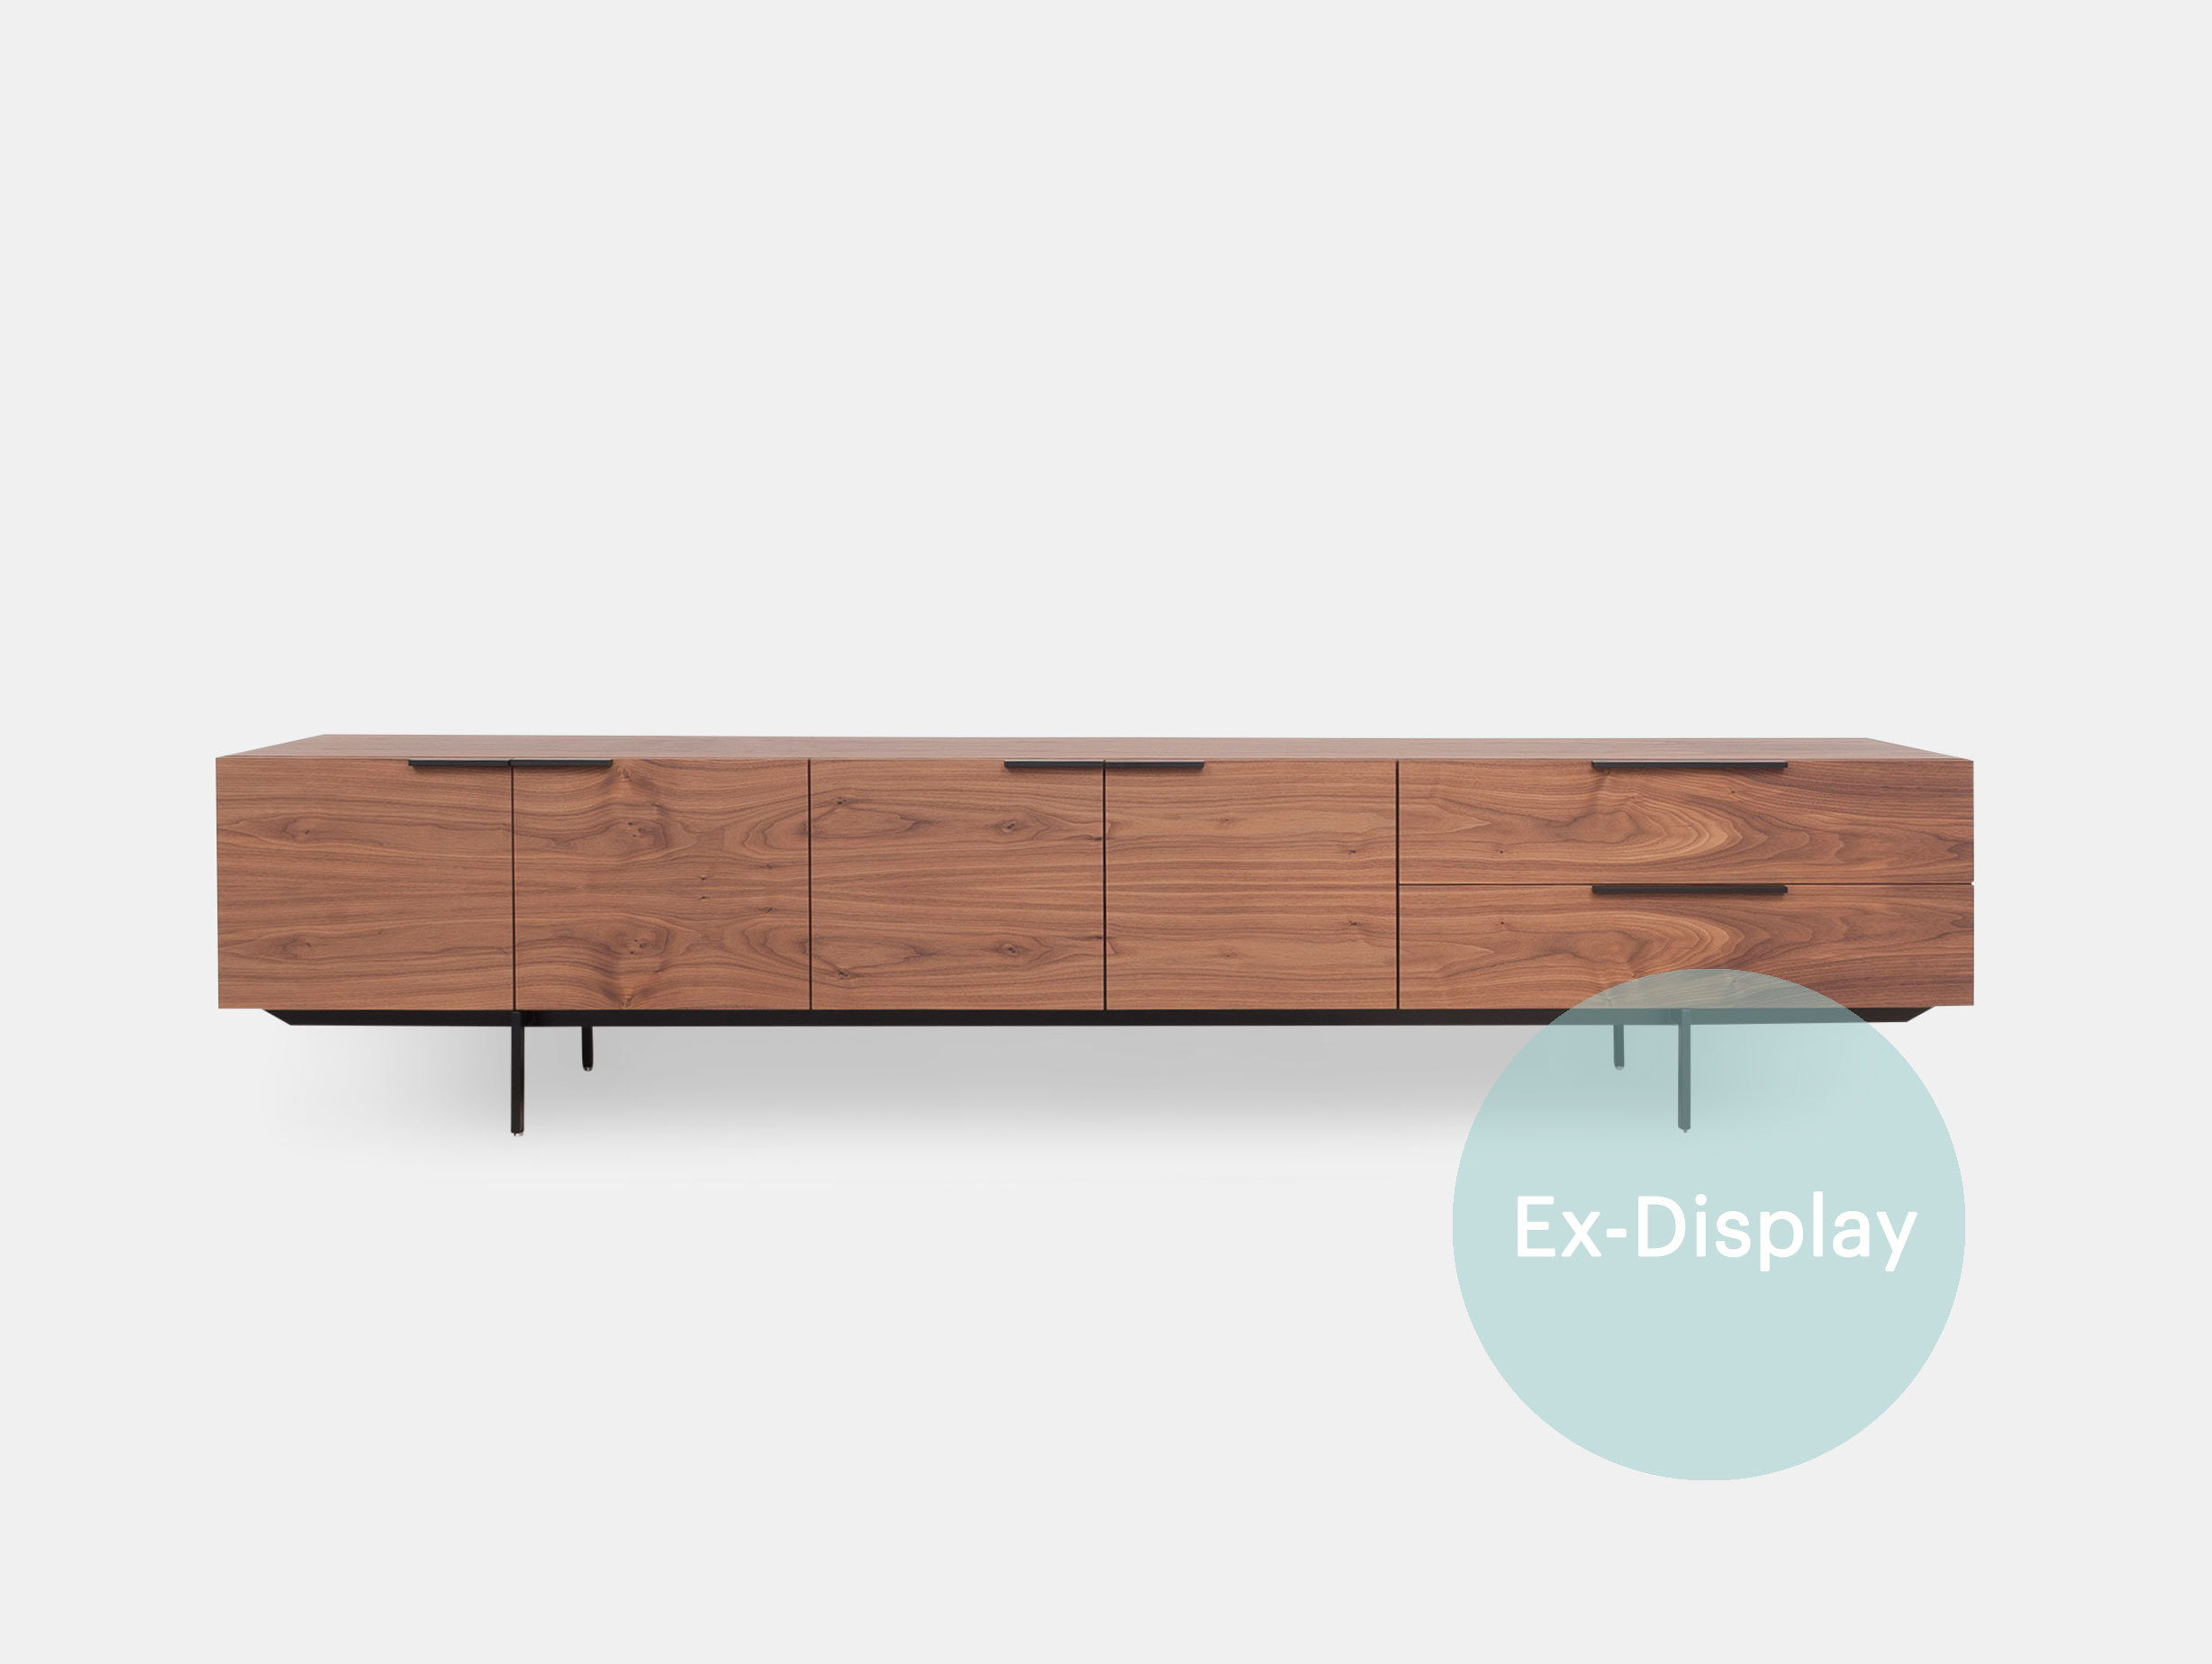 Frame Sideboard / 35% off in our Summer Sale at £1900 - SOLD image 1